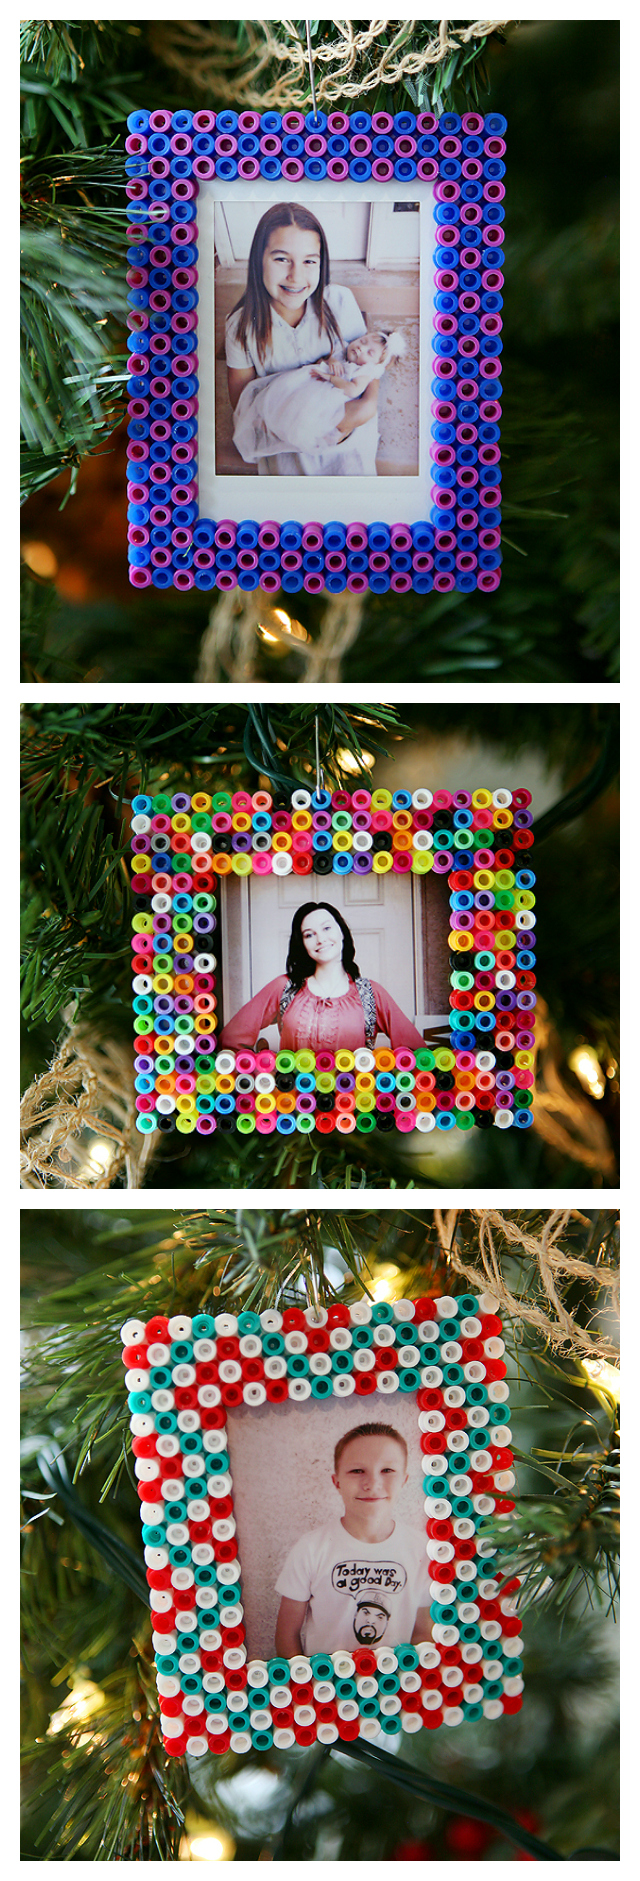 Perler Bead Christmas Ornaments | Ornaments kids can make